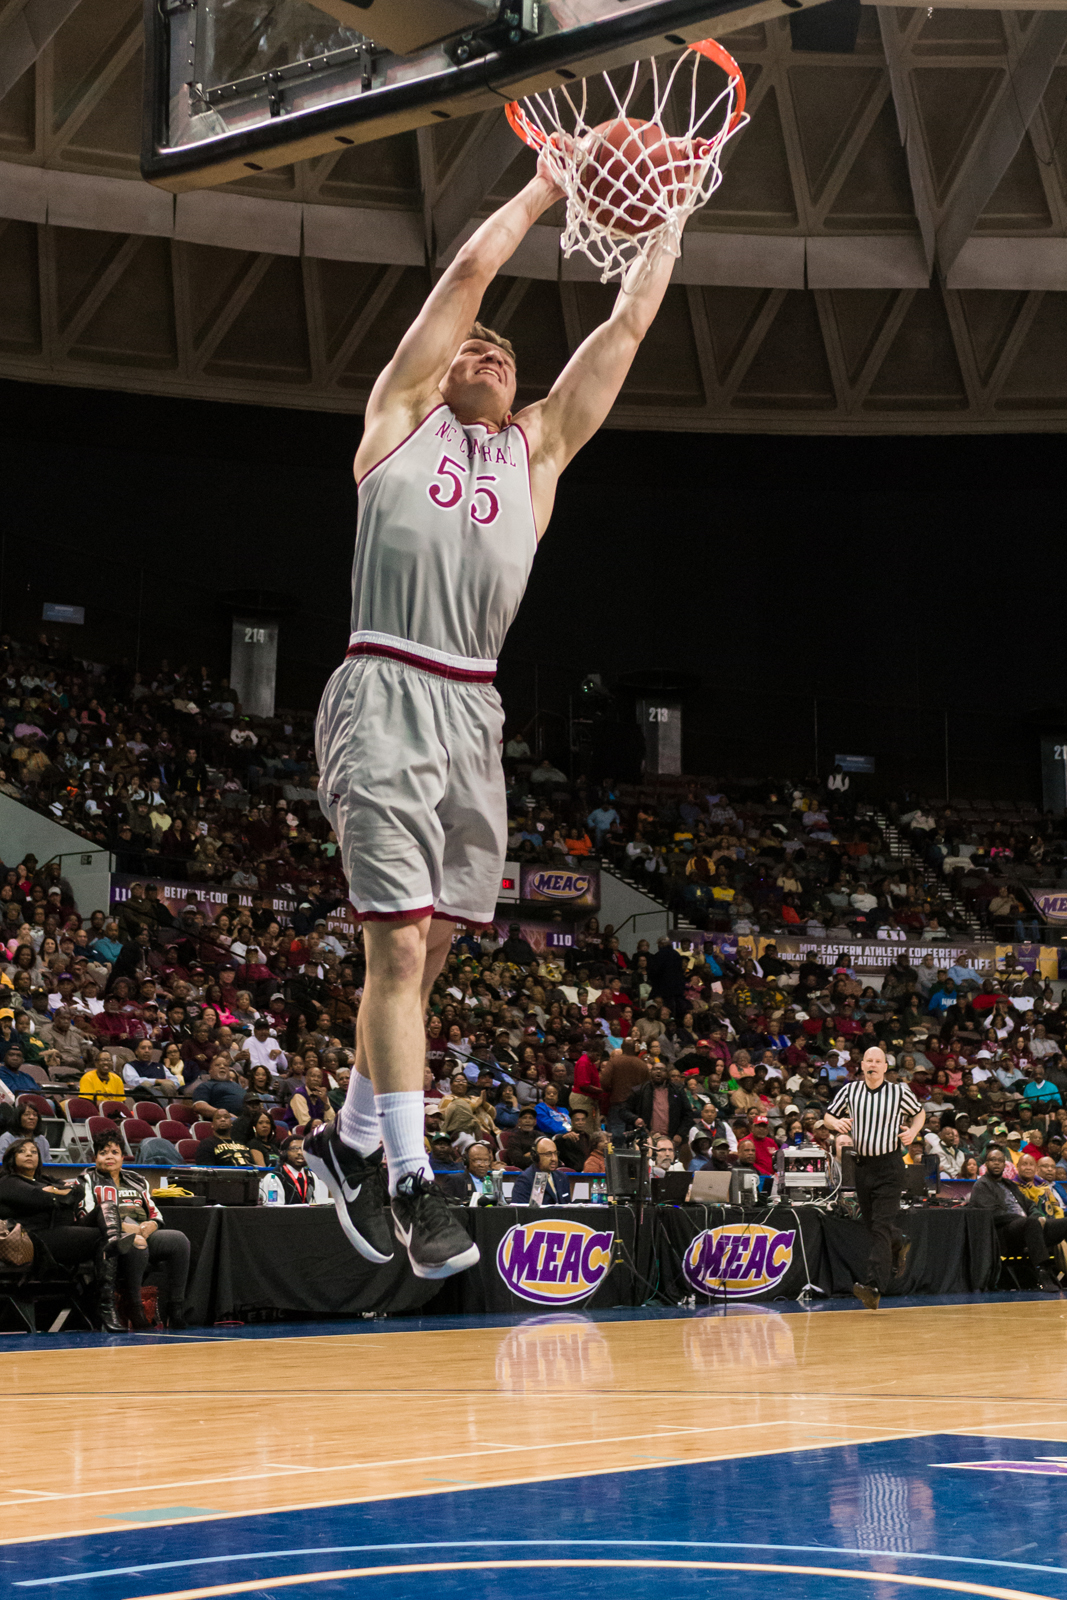 North Carolina Central Eagles guard John Guerra (55) goes up for a slam dunk against the Maryland-Eastern Shore Hawks during the 2017 MEAC Tournament held at the Scope Arena in Norfolk, VA. North Carolina Central defeated Maryland Eastern Shore 77-49.